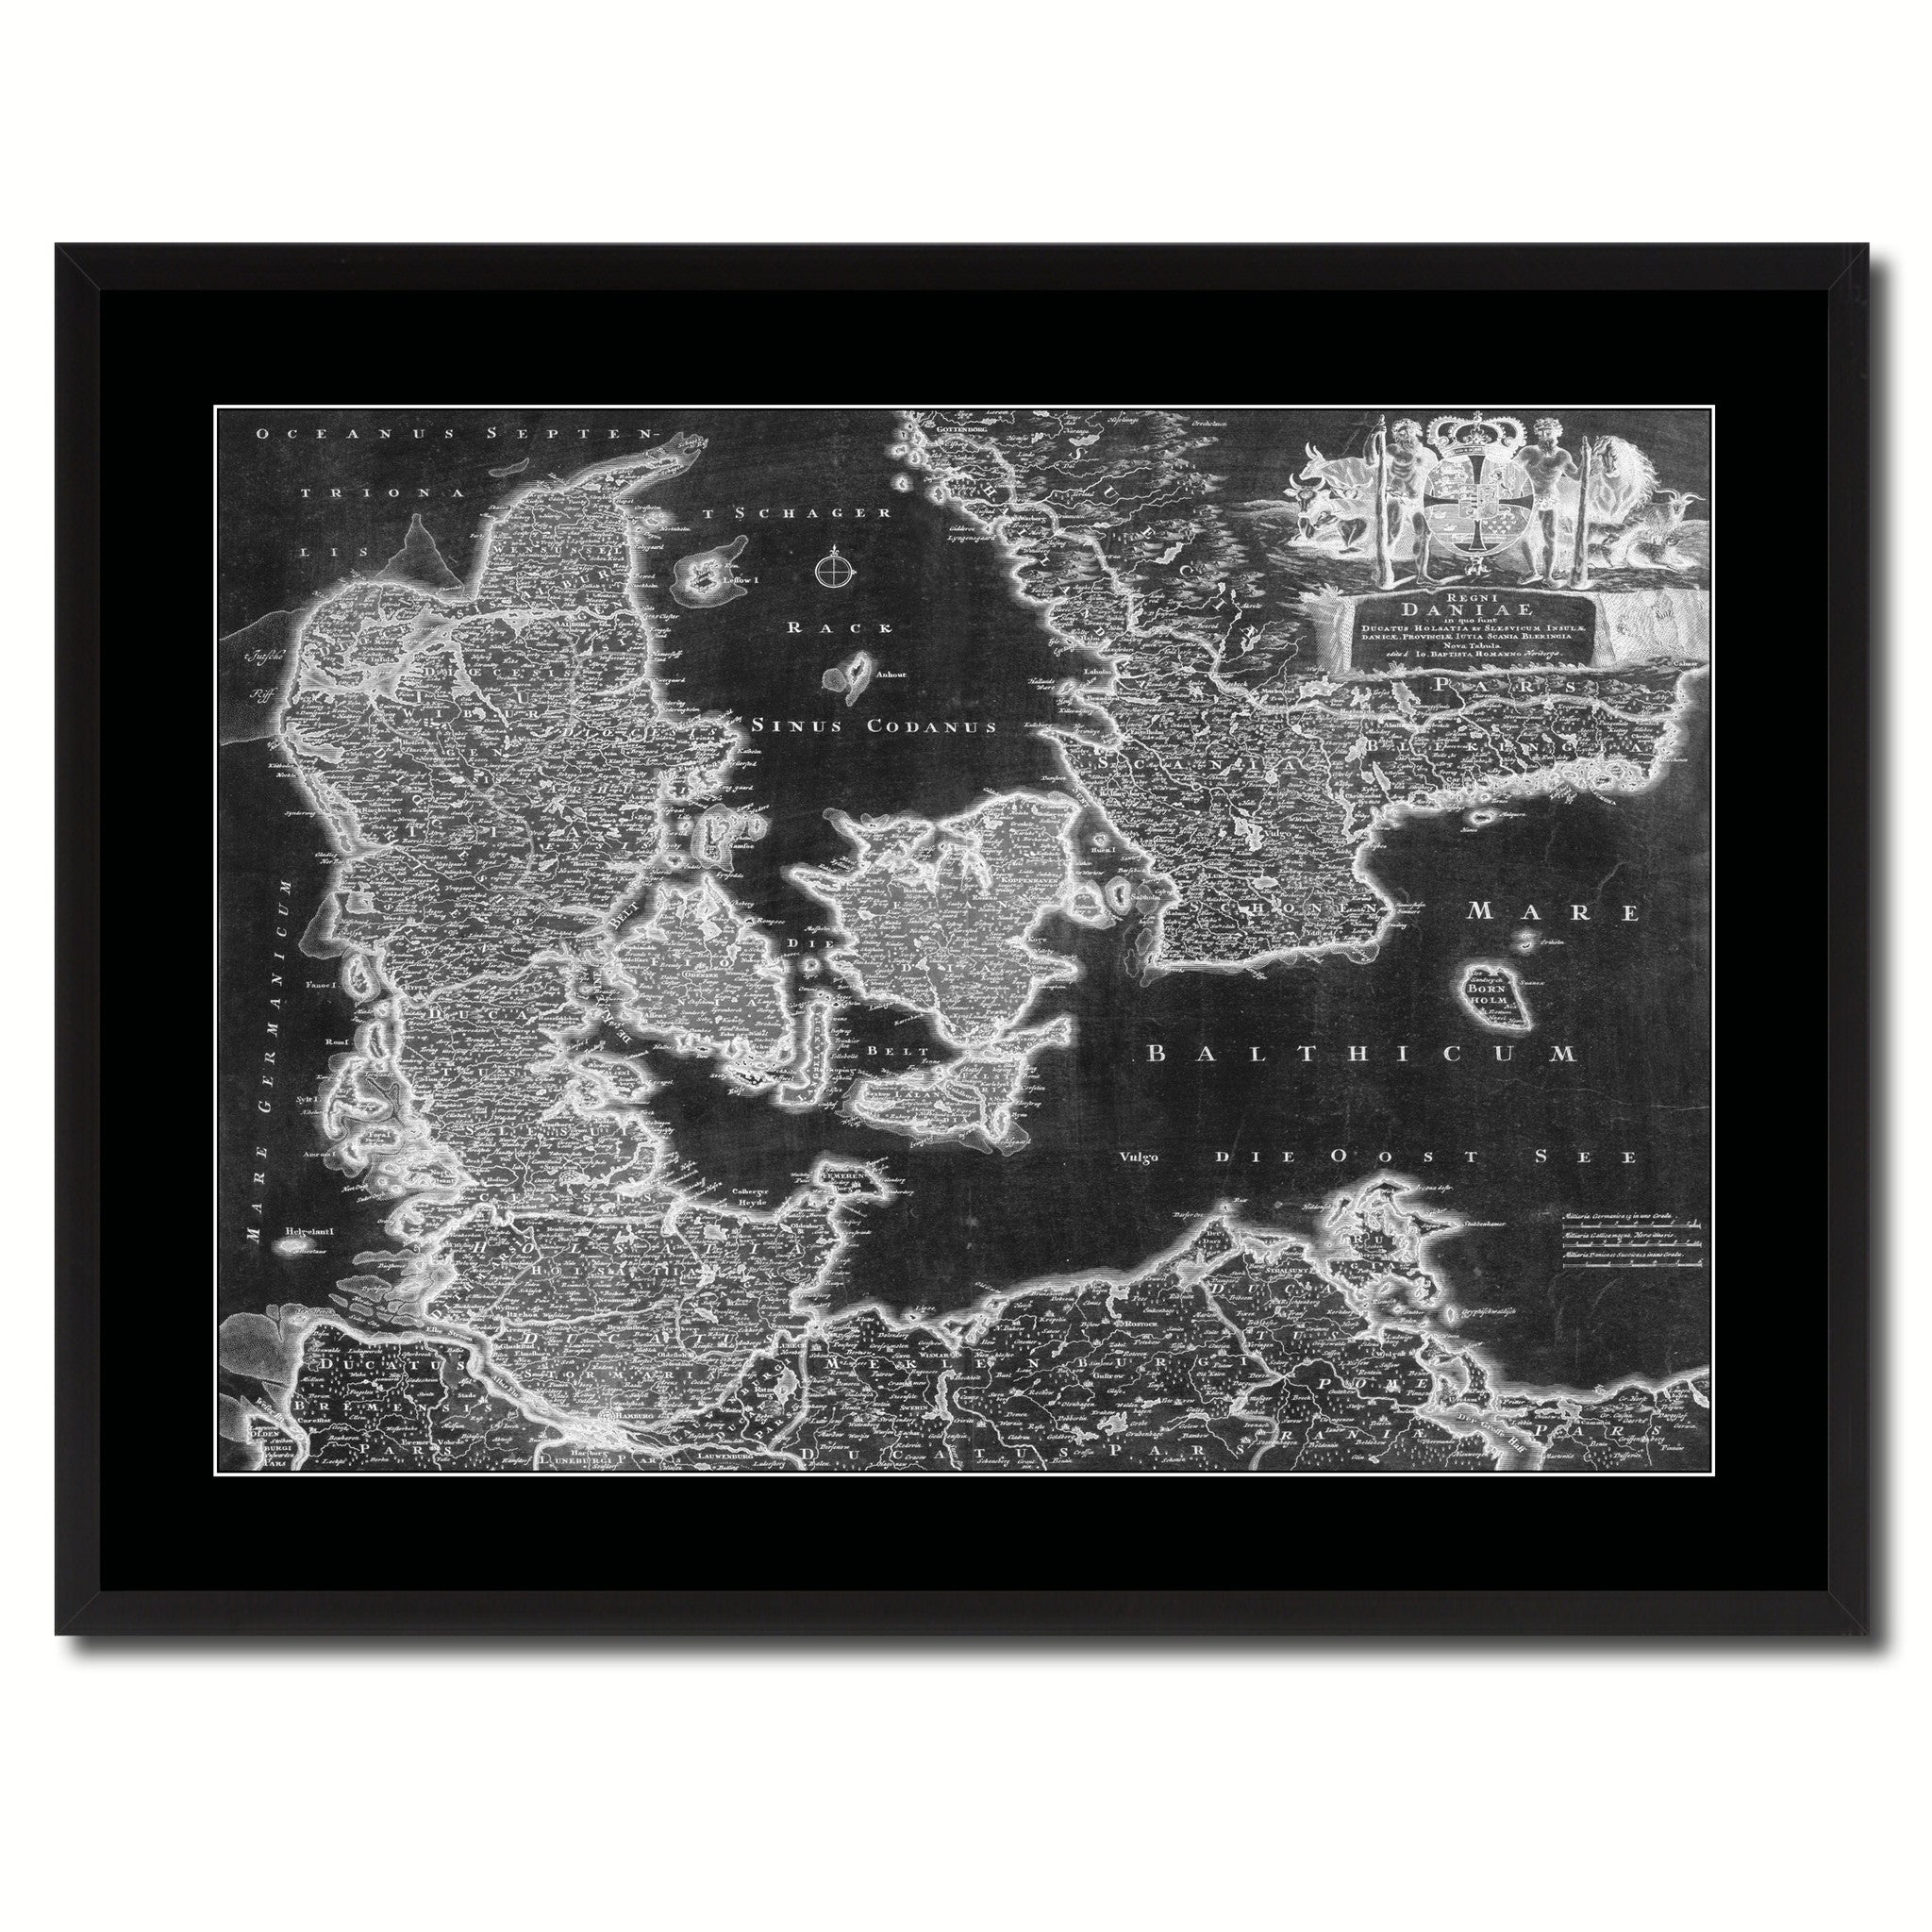 Denmark Centuries Vintage Monochrome Map Canvas Print, Gifts Picture Frames Home Decor Wall Art